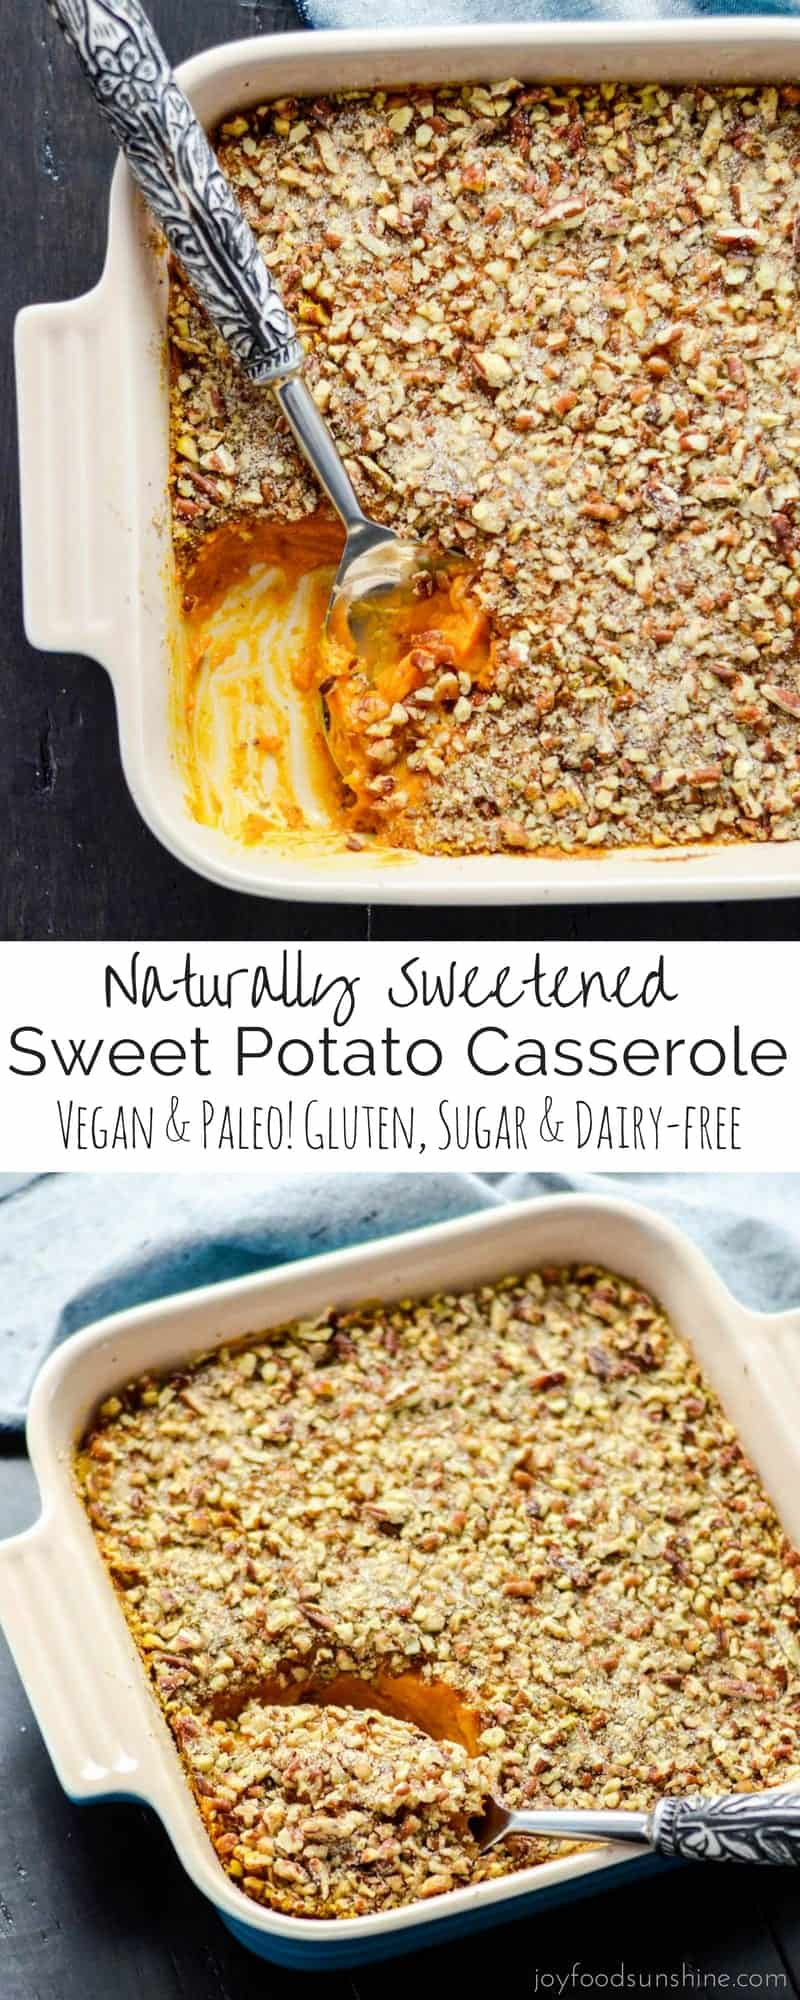 This Healthy Sweet Potato Casserole recipe is the perfect Thanksgiving side dish! It's only sweetened with applesauce and is paleo, vegan, gluten-free, dairy-free & sugar free!